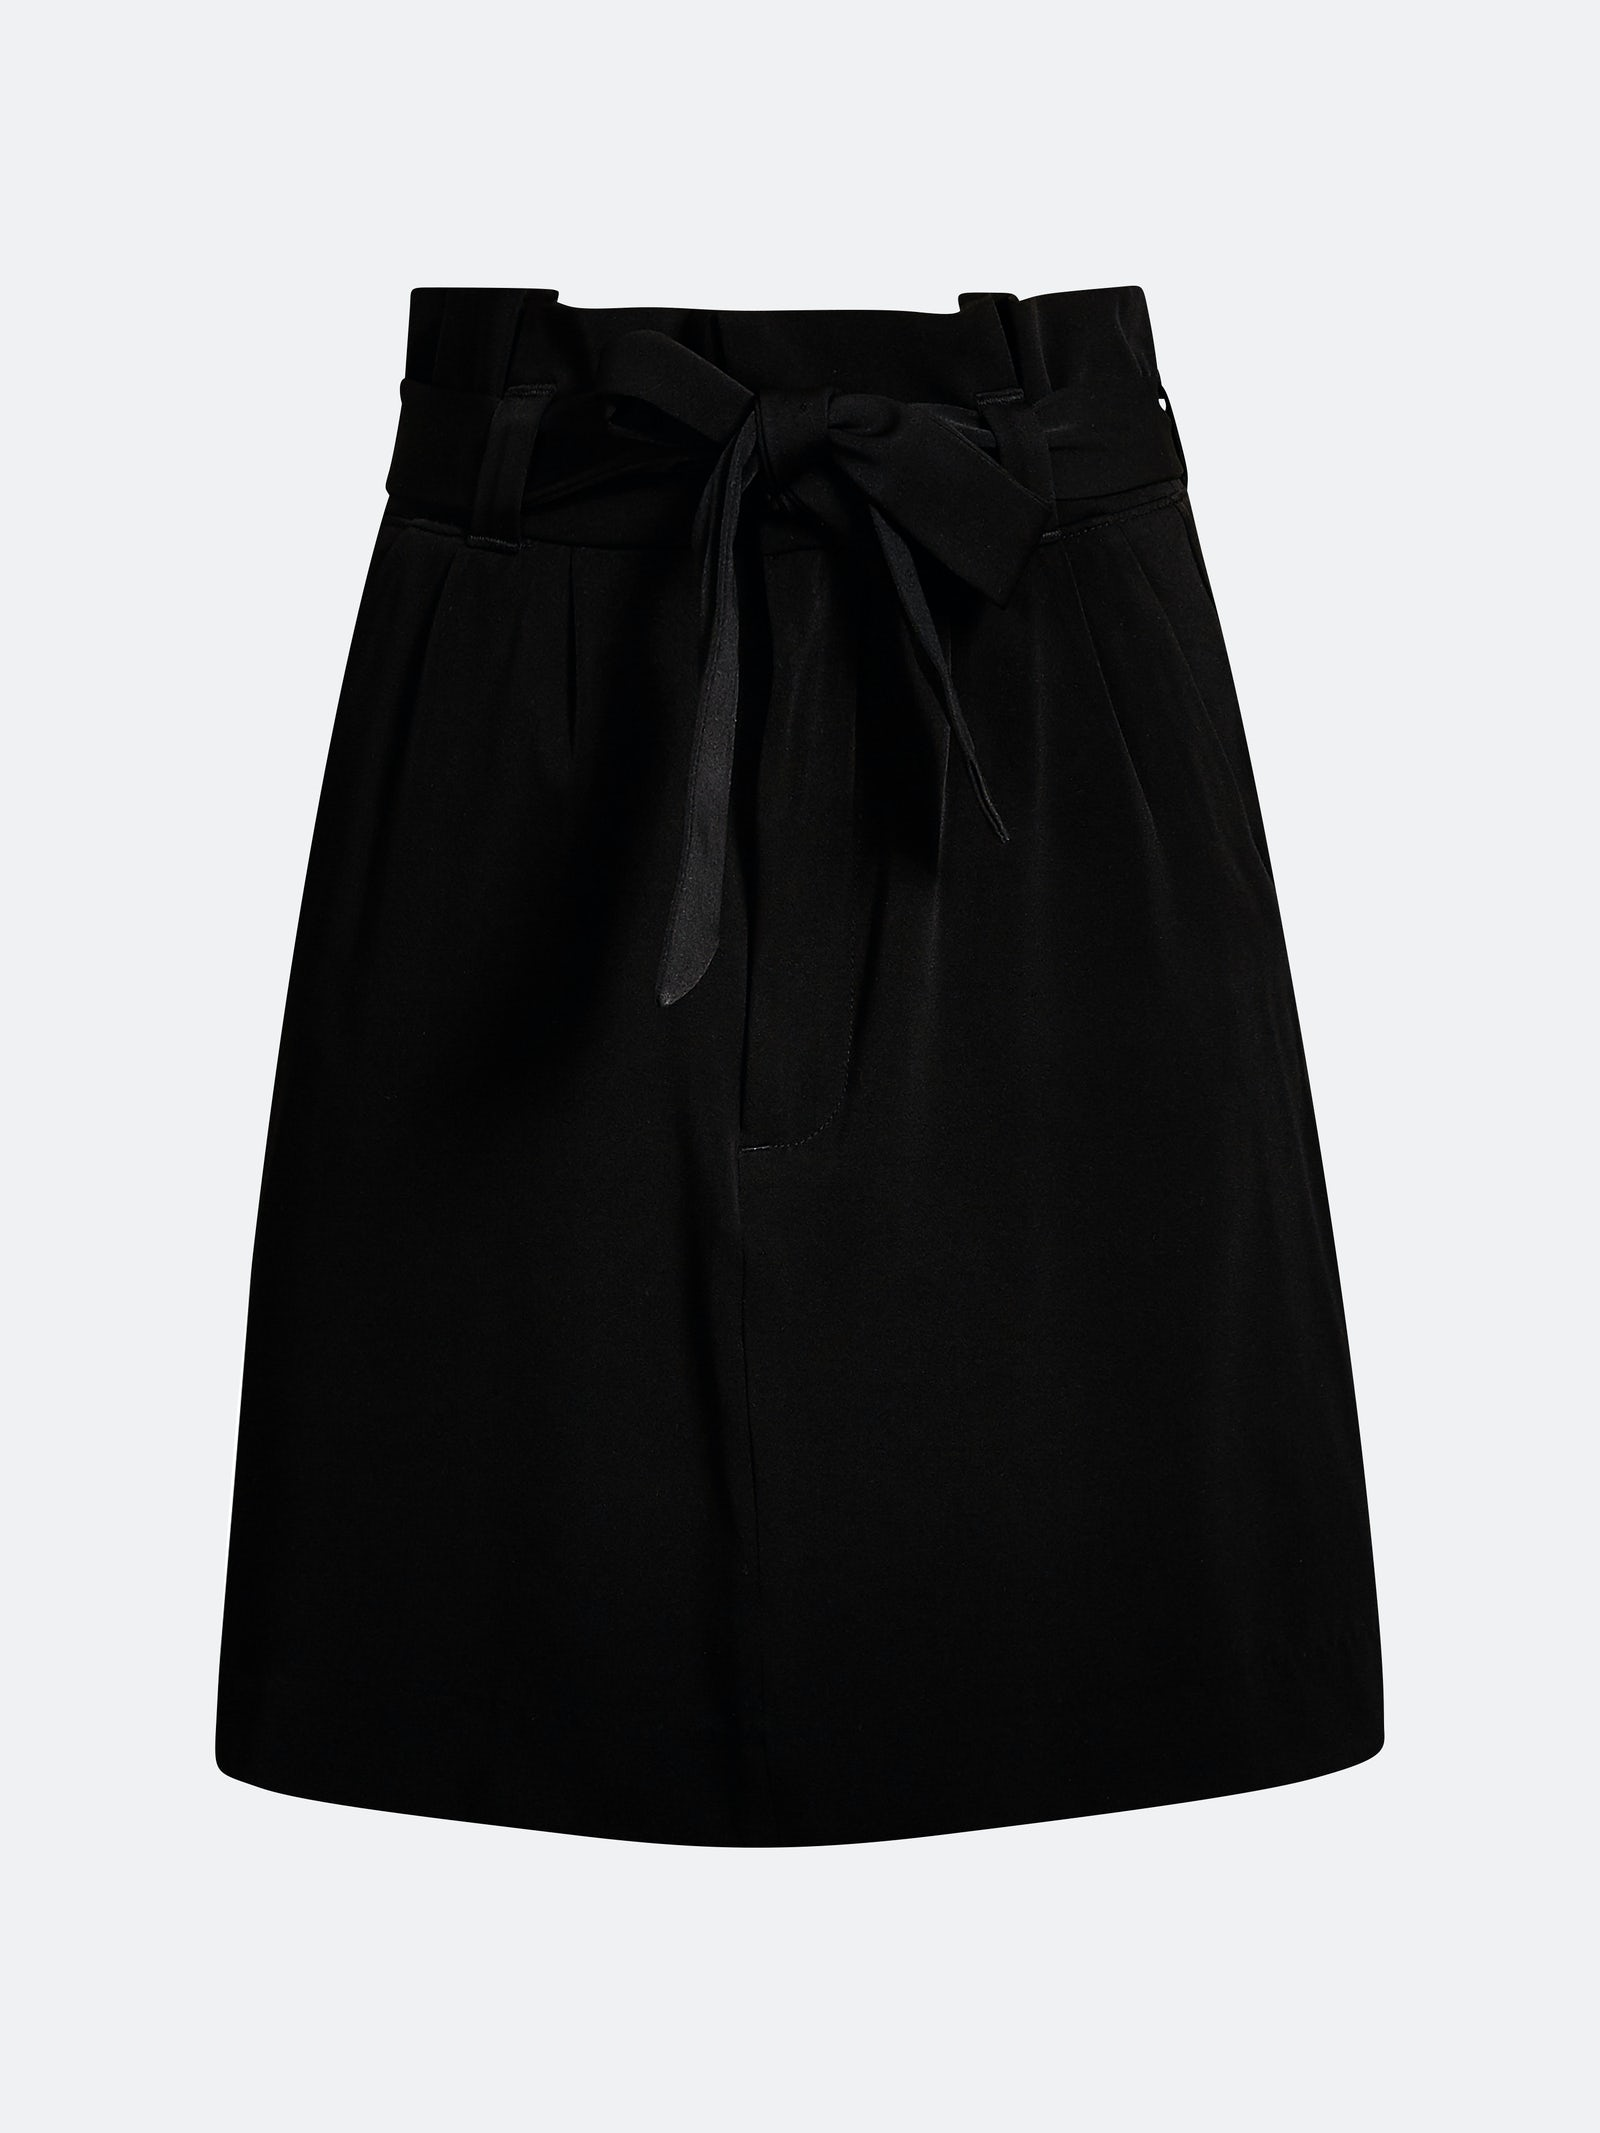 Wingy skirt